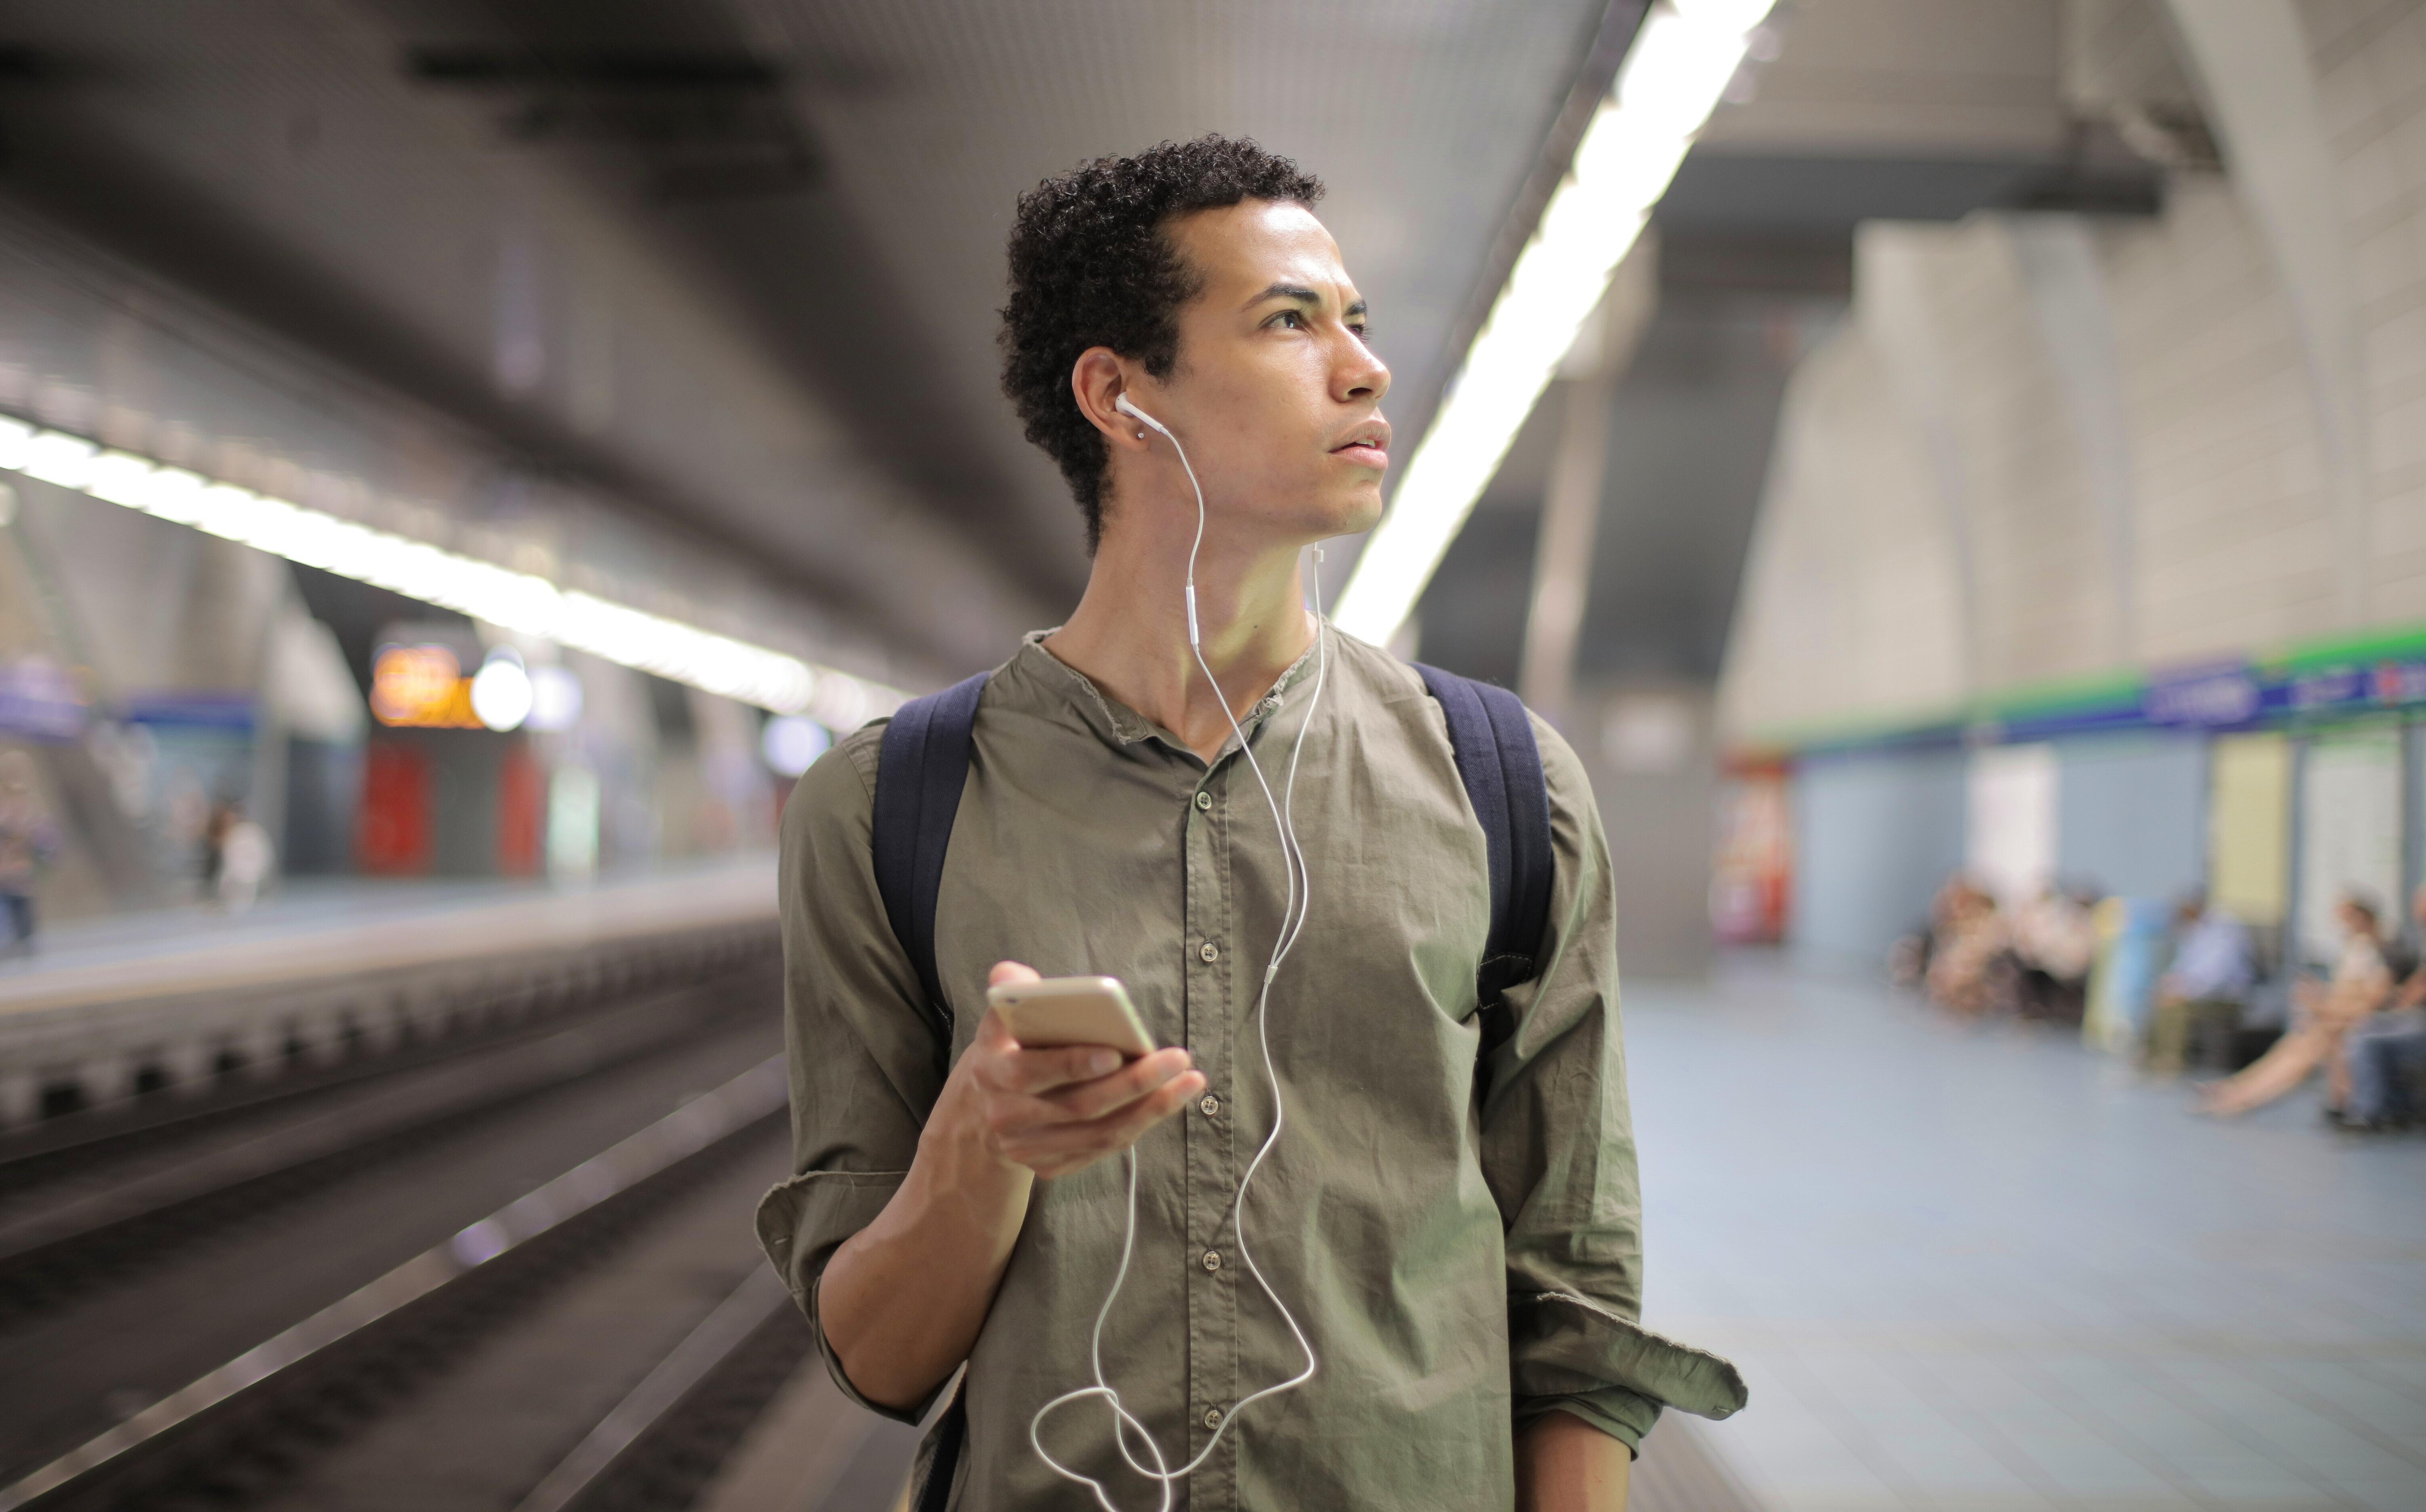 Listening to podcasts on Spotify on your commute